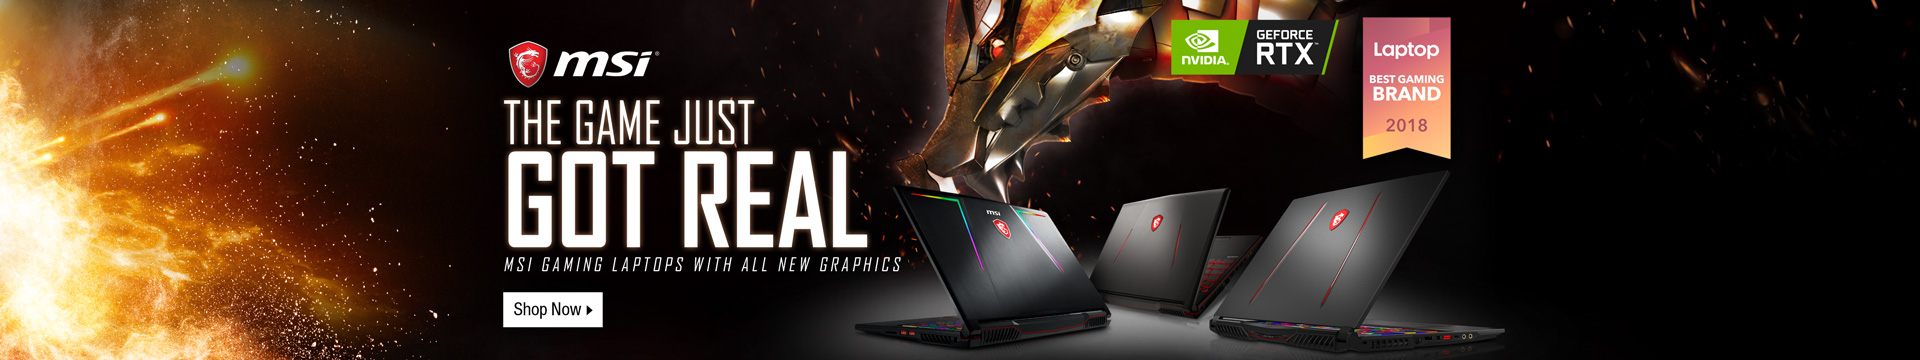 Gaming Laptops | MSI, ASUS, Acer and More - Newegg com